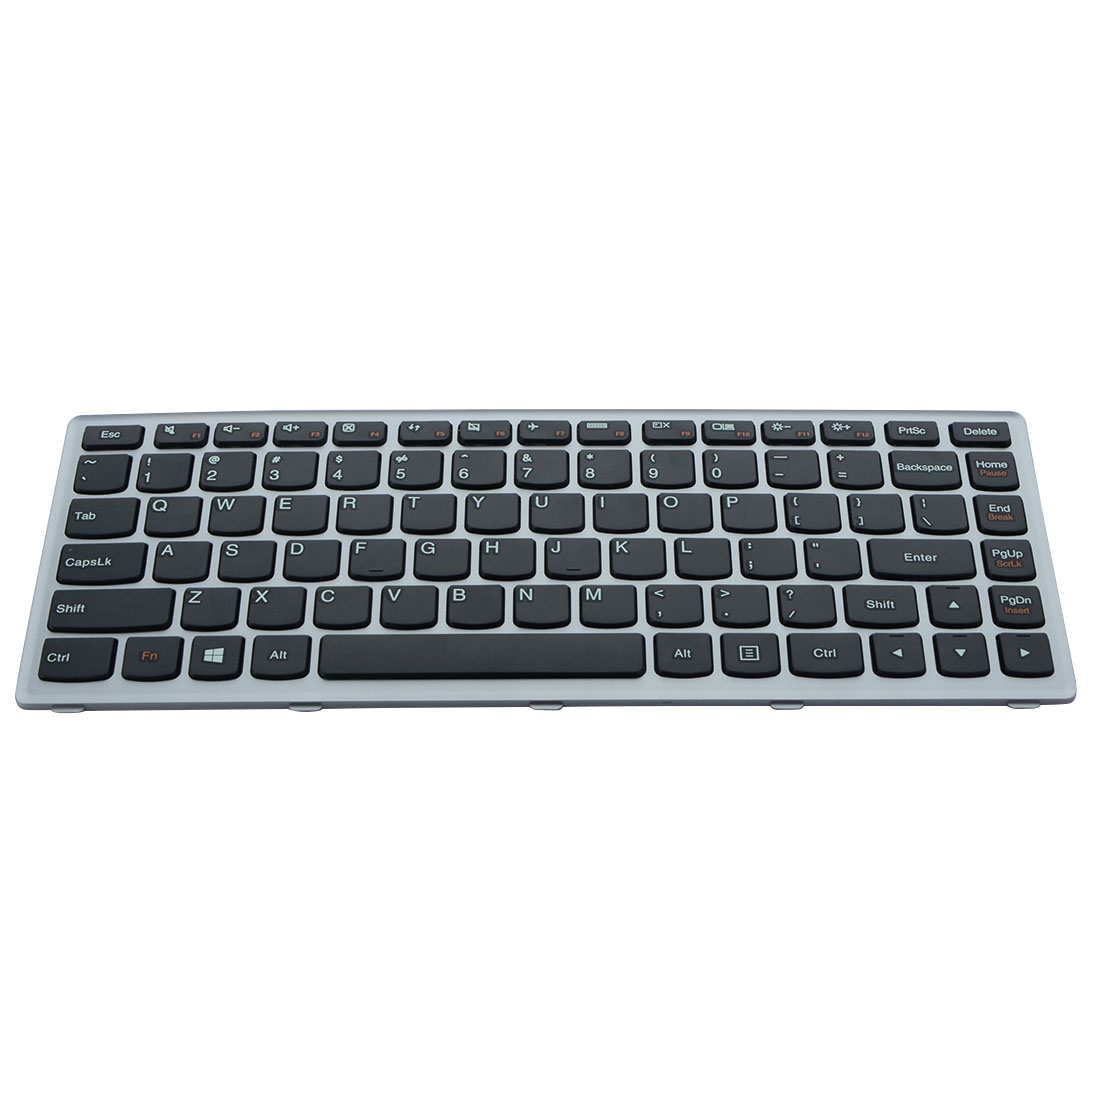 1 Pcs English Standard Replacement Keyboard Silver Laptop Keyboard For IBM Lenovo U310 With Package